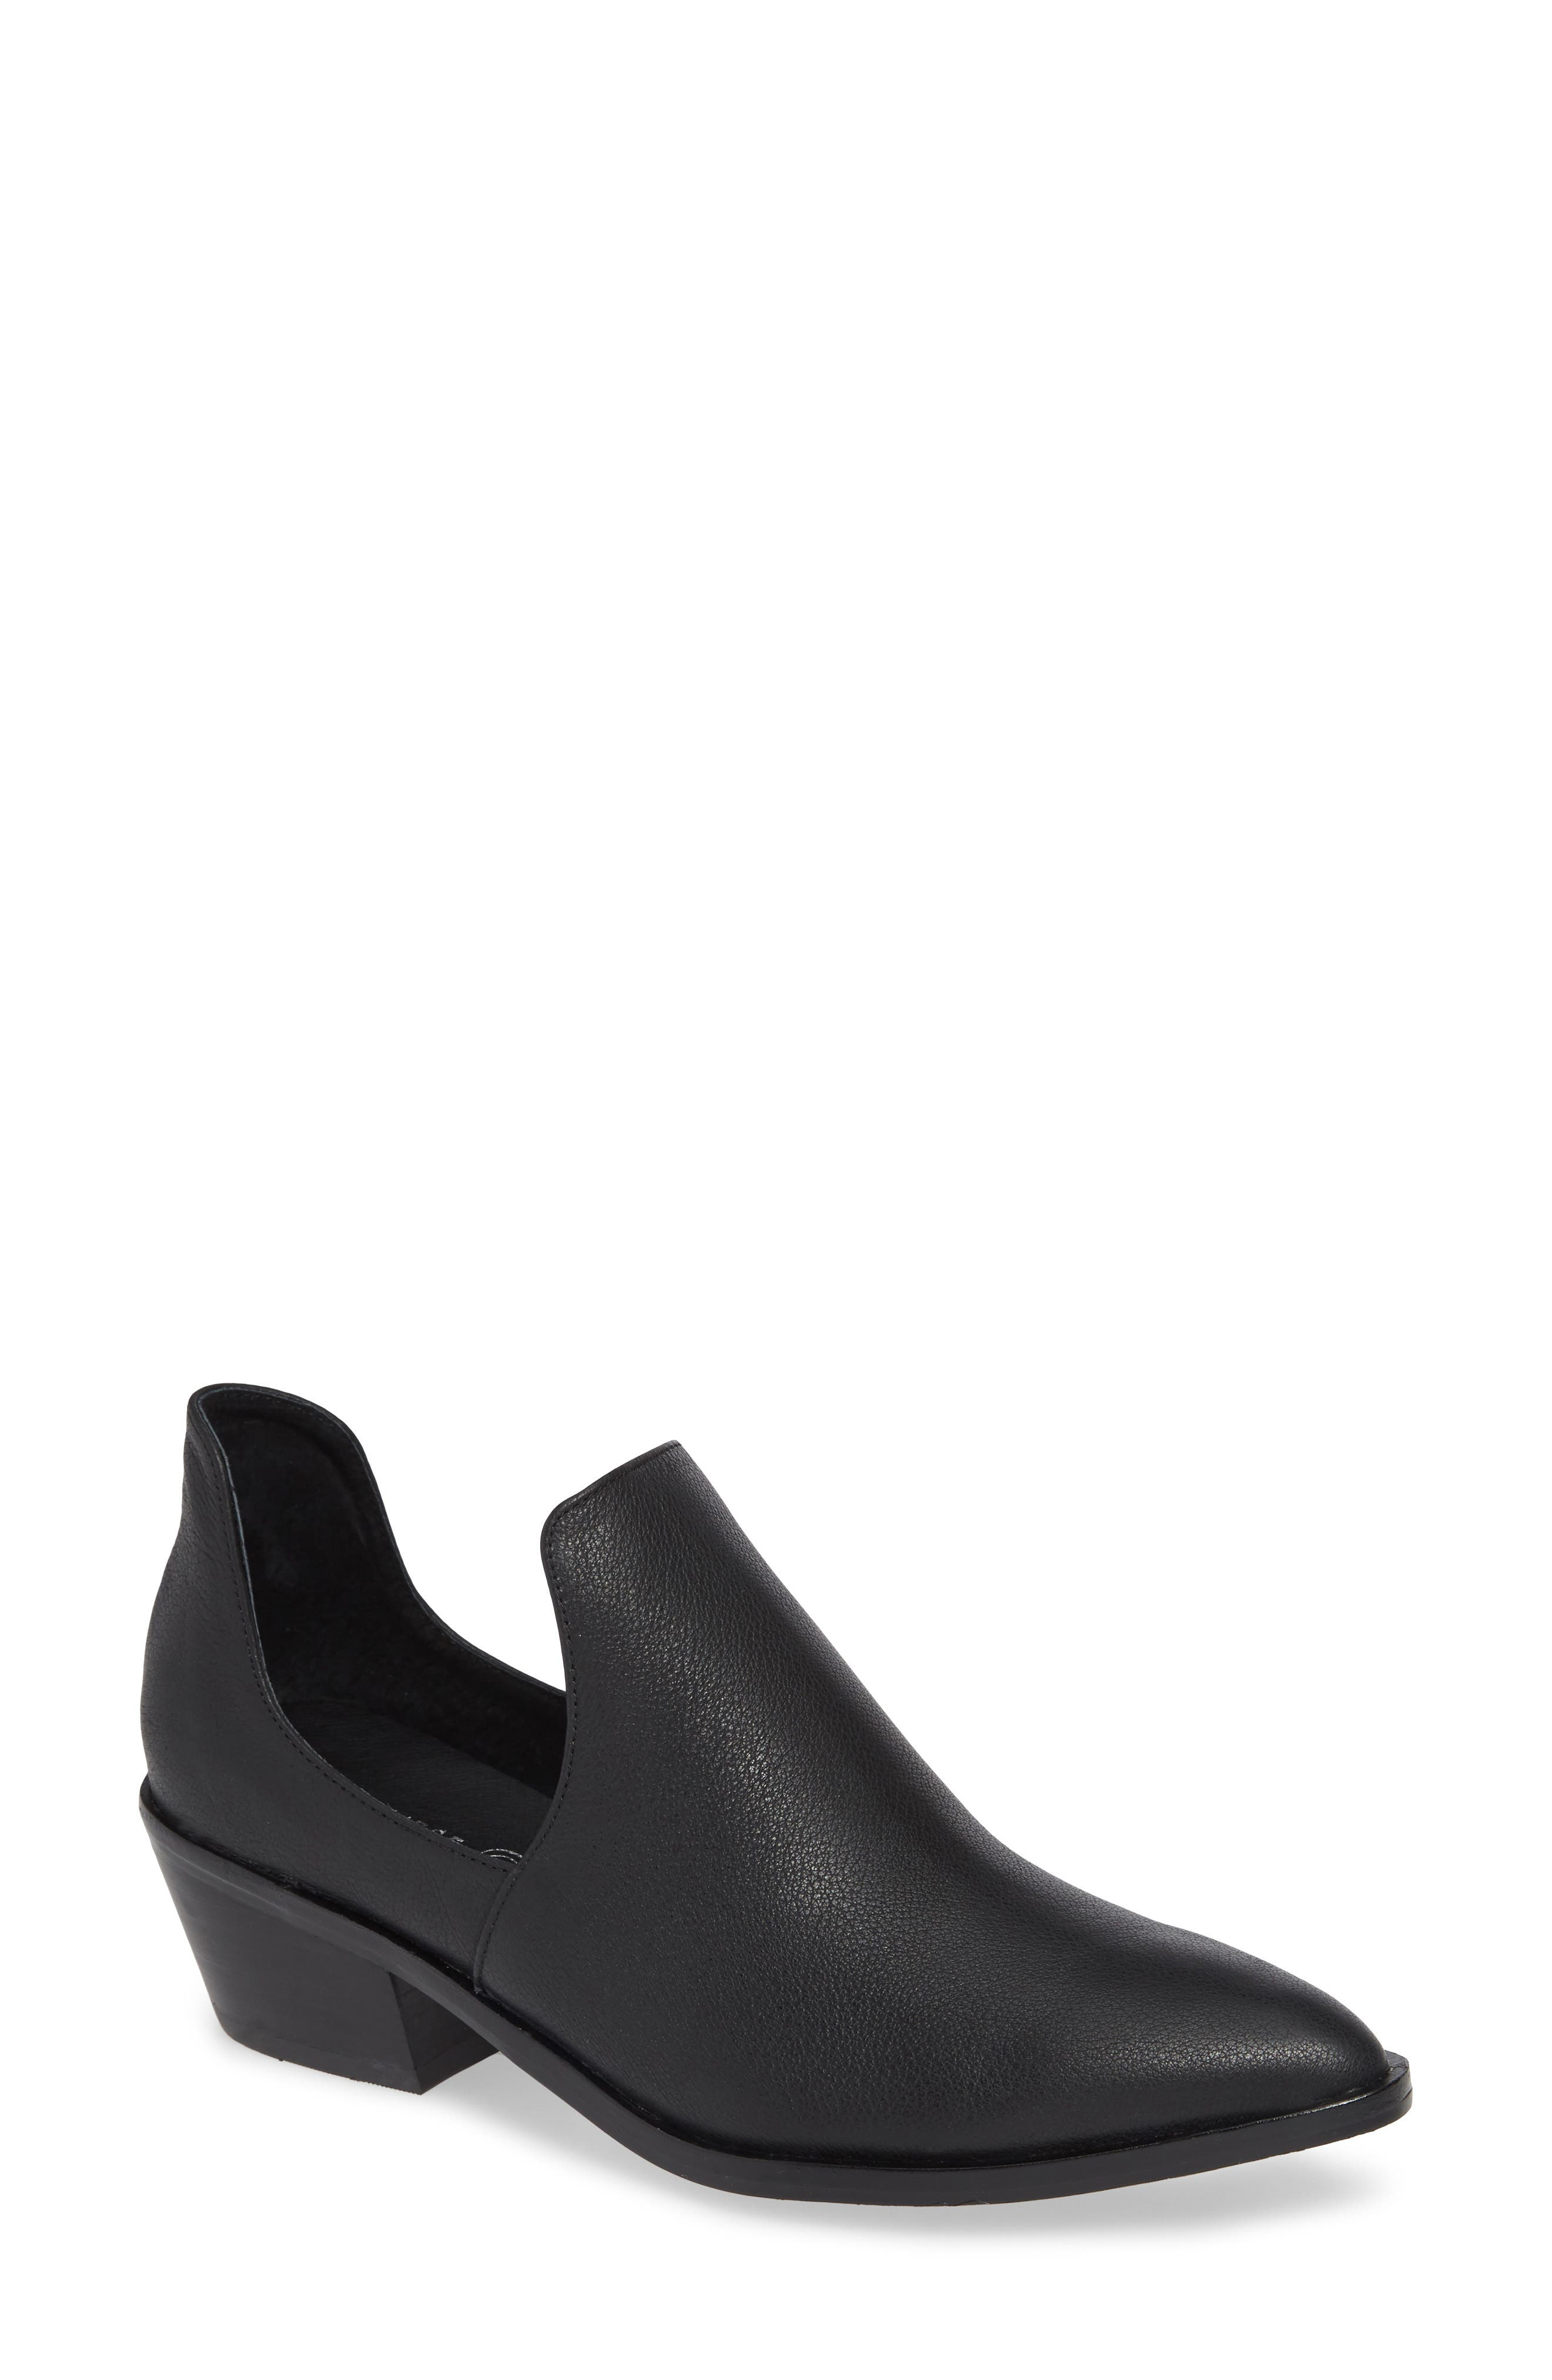 Chinese Laundry Focus Open Sided Bootie- Black